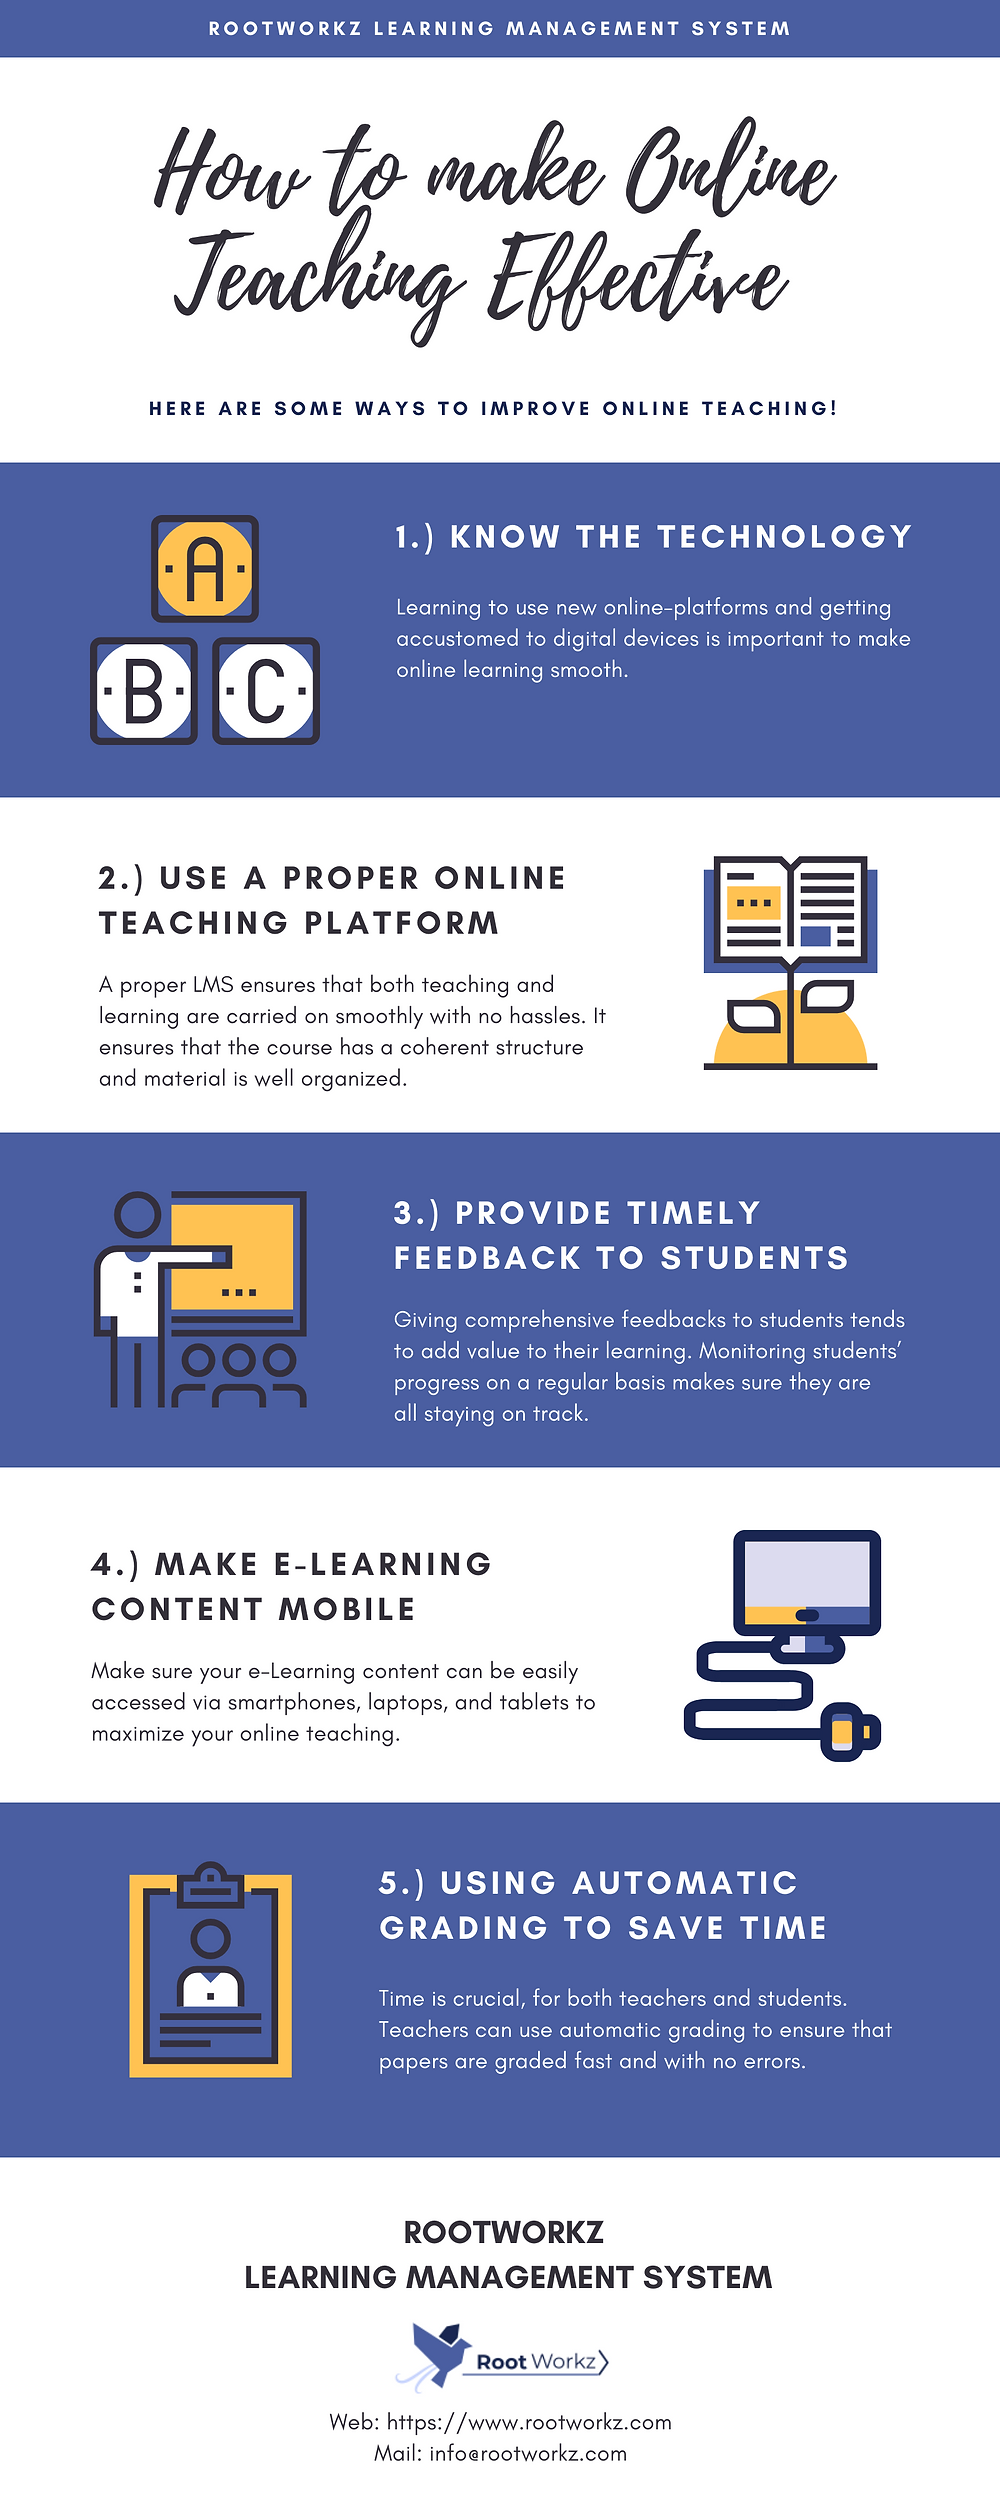 RootWorkz tips to make online teaching effective